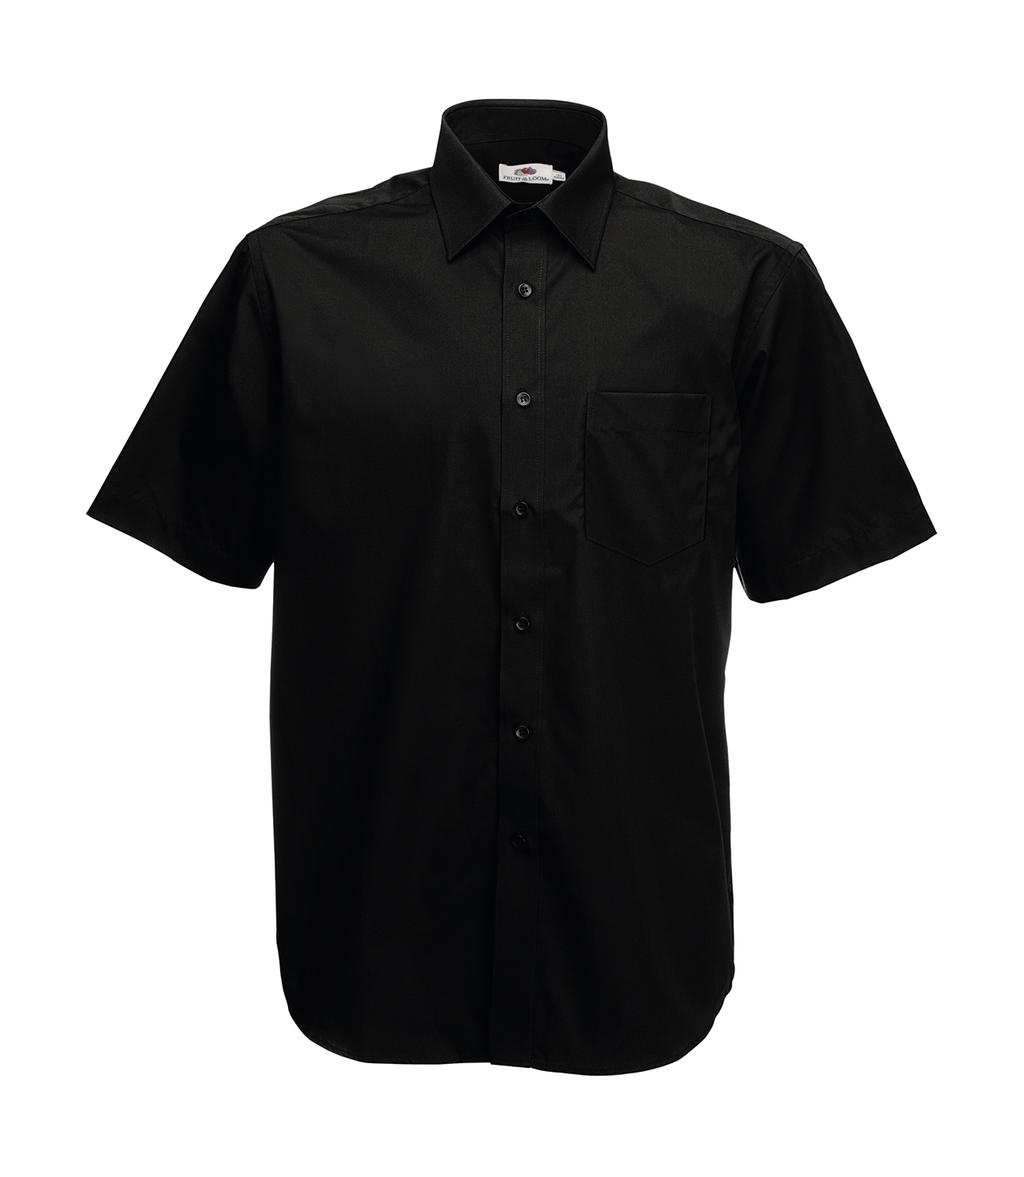 Fruit of the Loom Poplin Shirt Short Sleeve